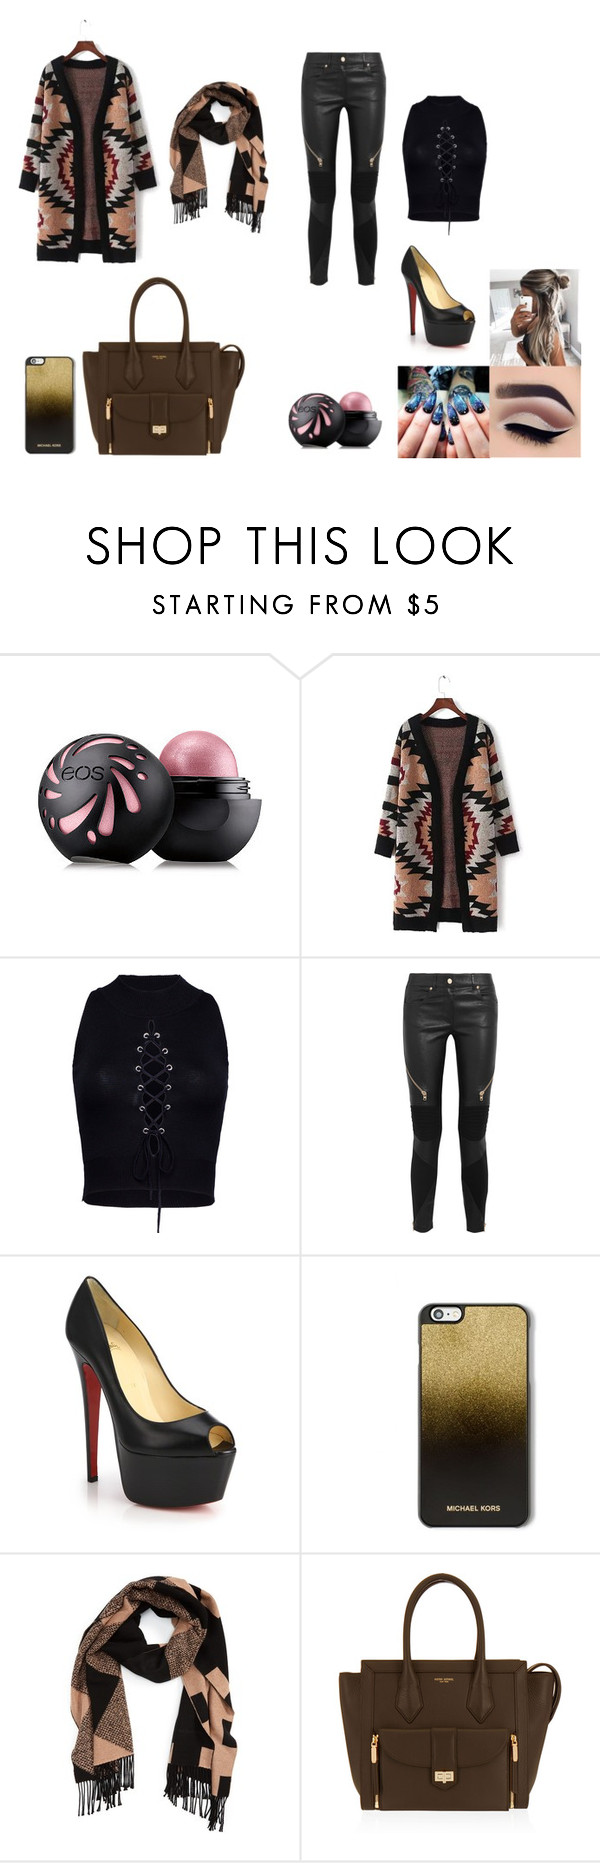 """Unbenannt #28"" by kazumi-black-770 on Polyvore featuring Mode, Eos, WithChic, Givenchy, Christian Louboutin, MICHAEL Michael Kors, Burberry und Henri Bendel"